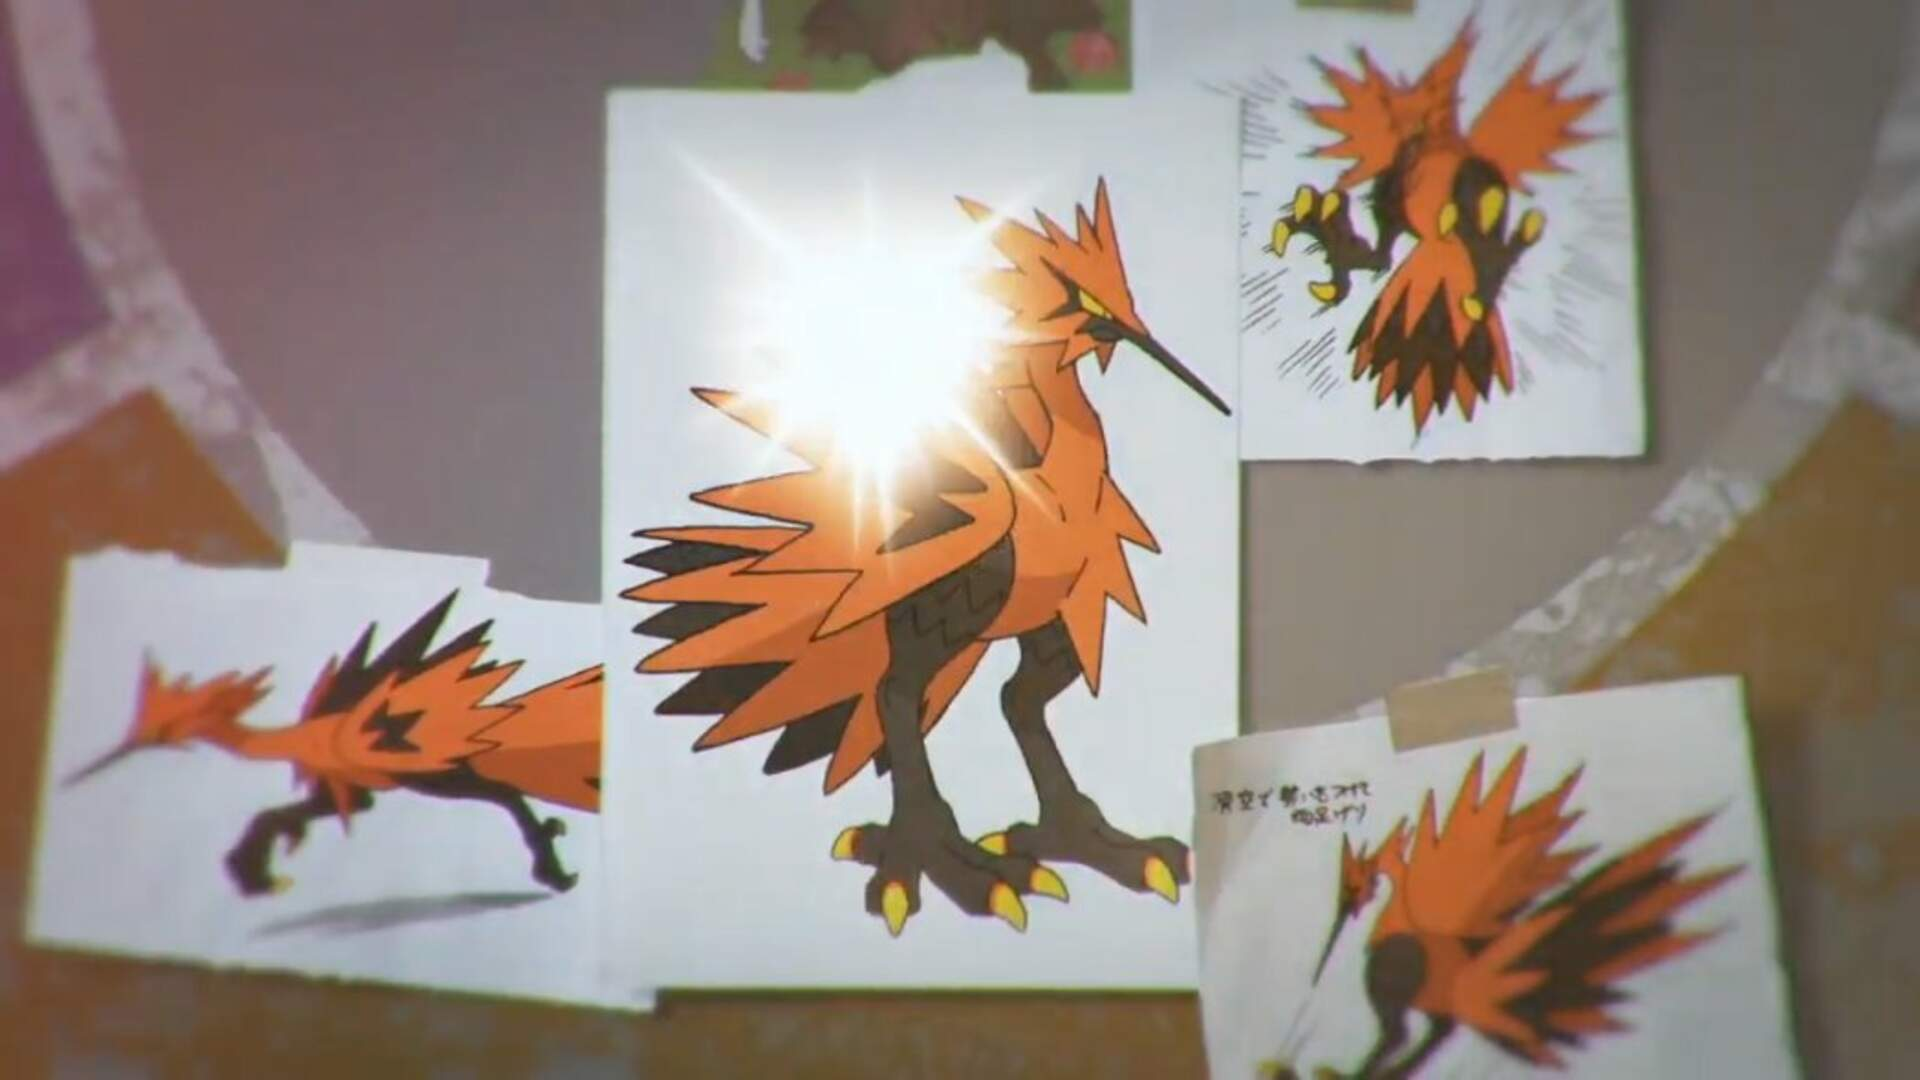 Here's Galarian Articuno, Moltres, and Zapdos in Pokemon Sword and Shield